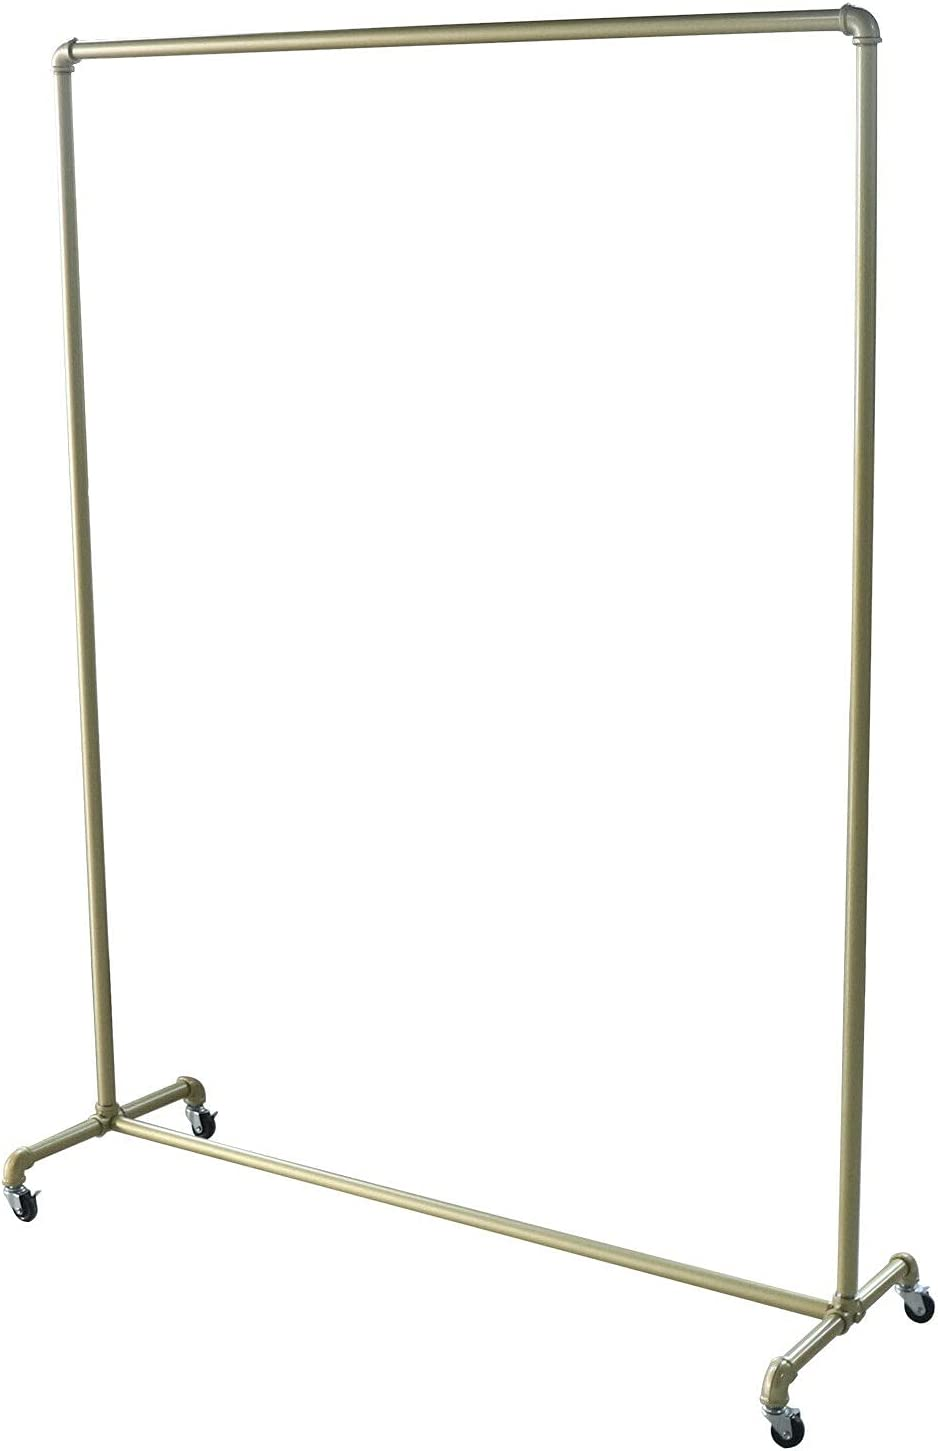 Rolling Garment Laundry Rack Clothing Max 74% Phoenix Mall OFF Hanging Drying Wear